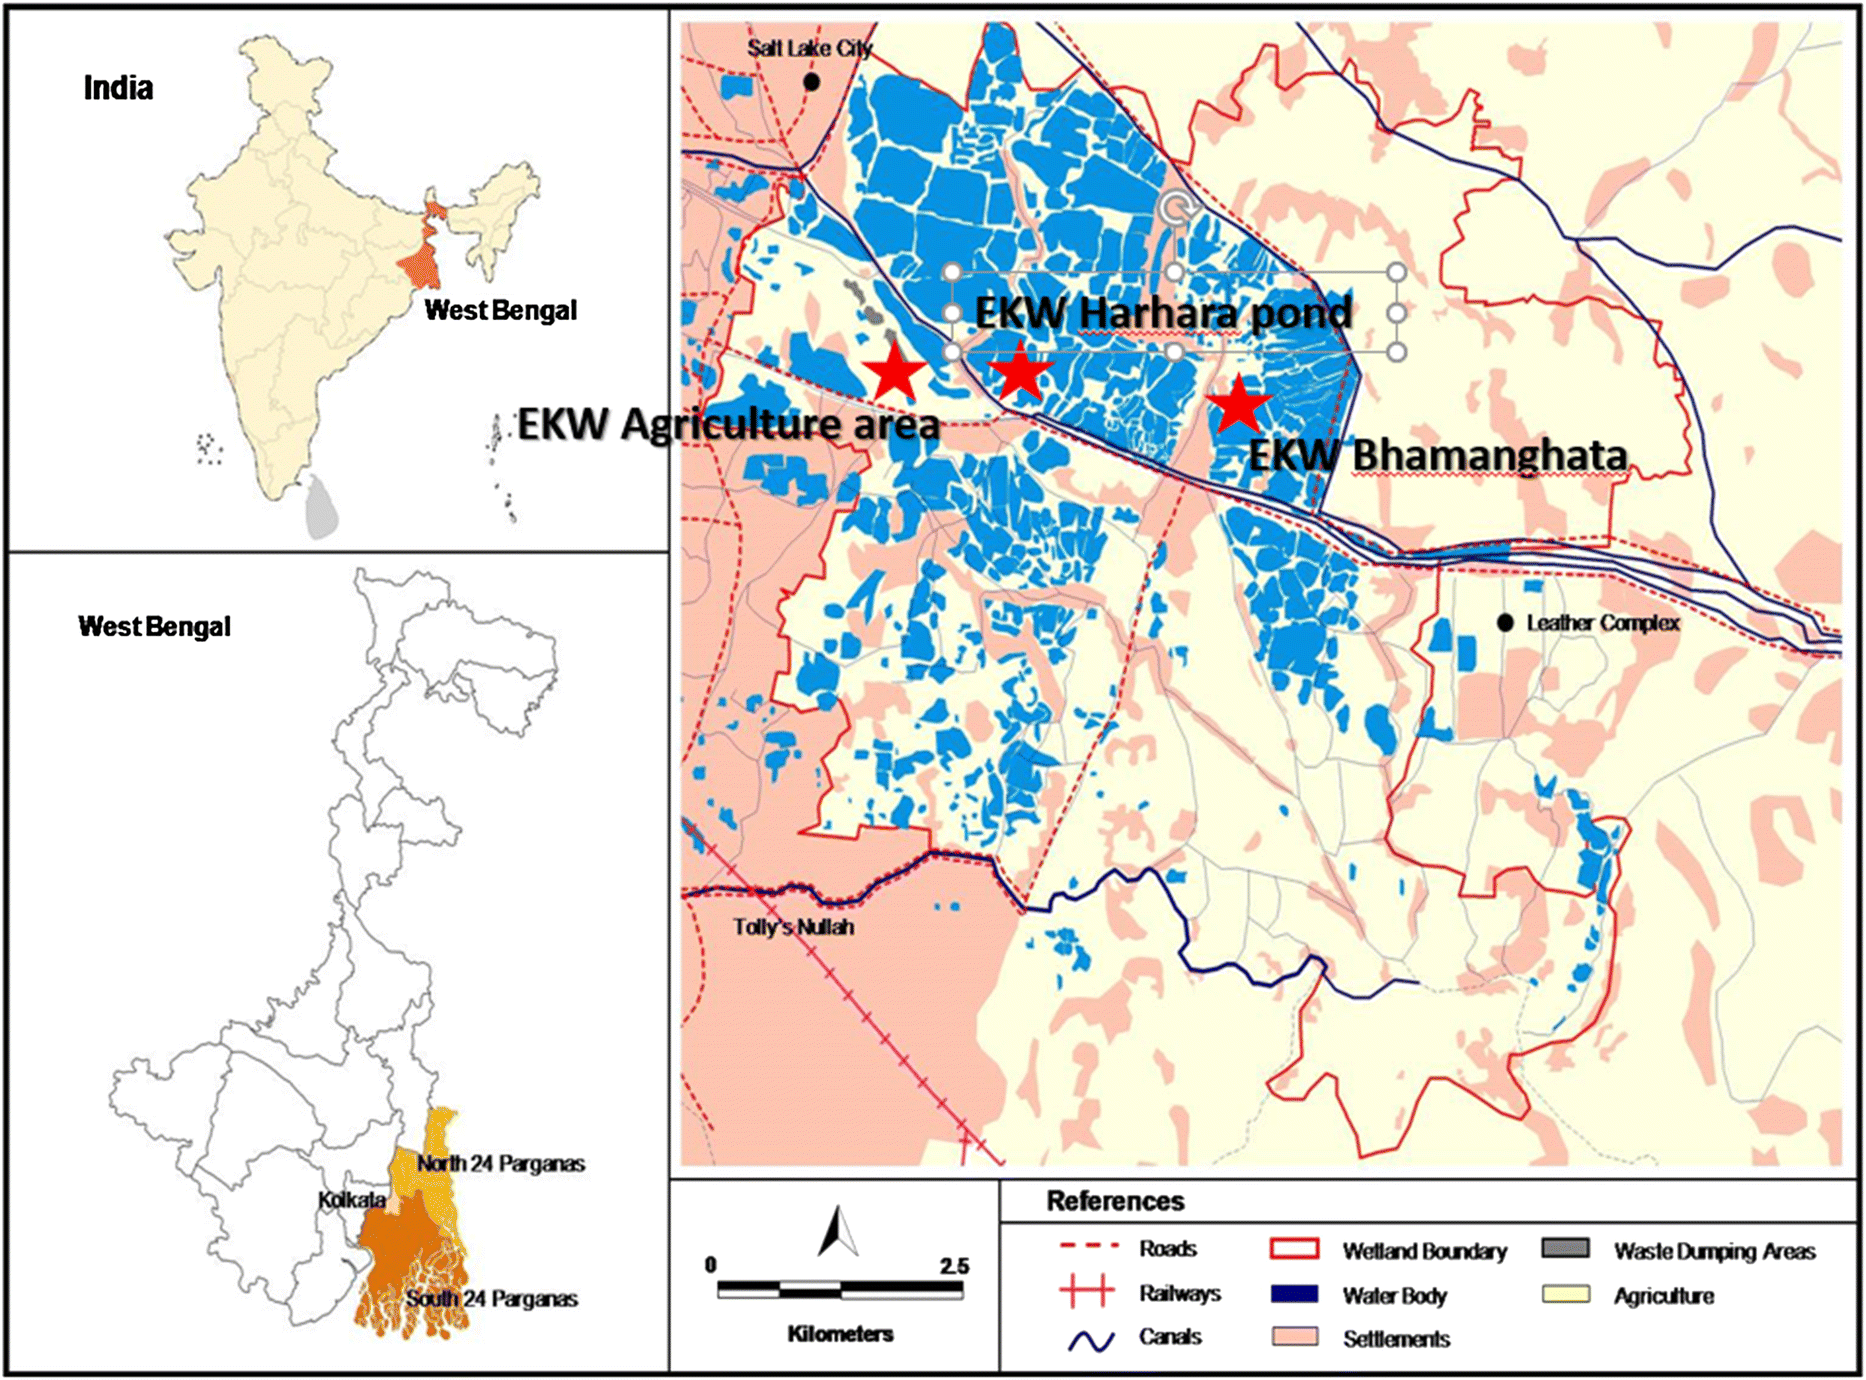 Ecosystem service assessment of selected wetlands of Kolkata